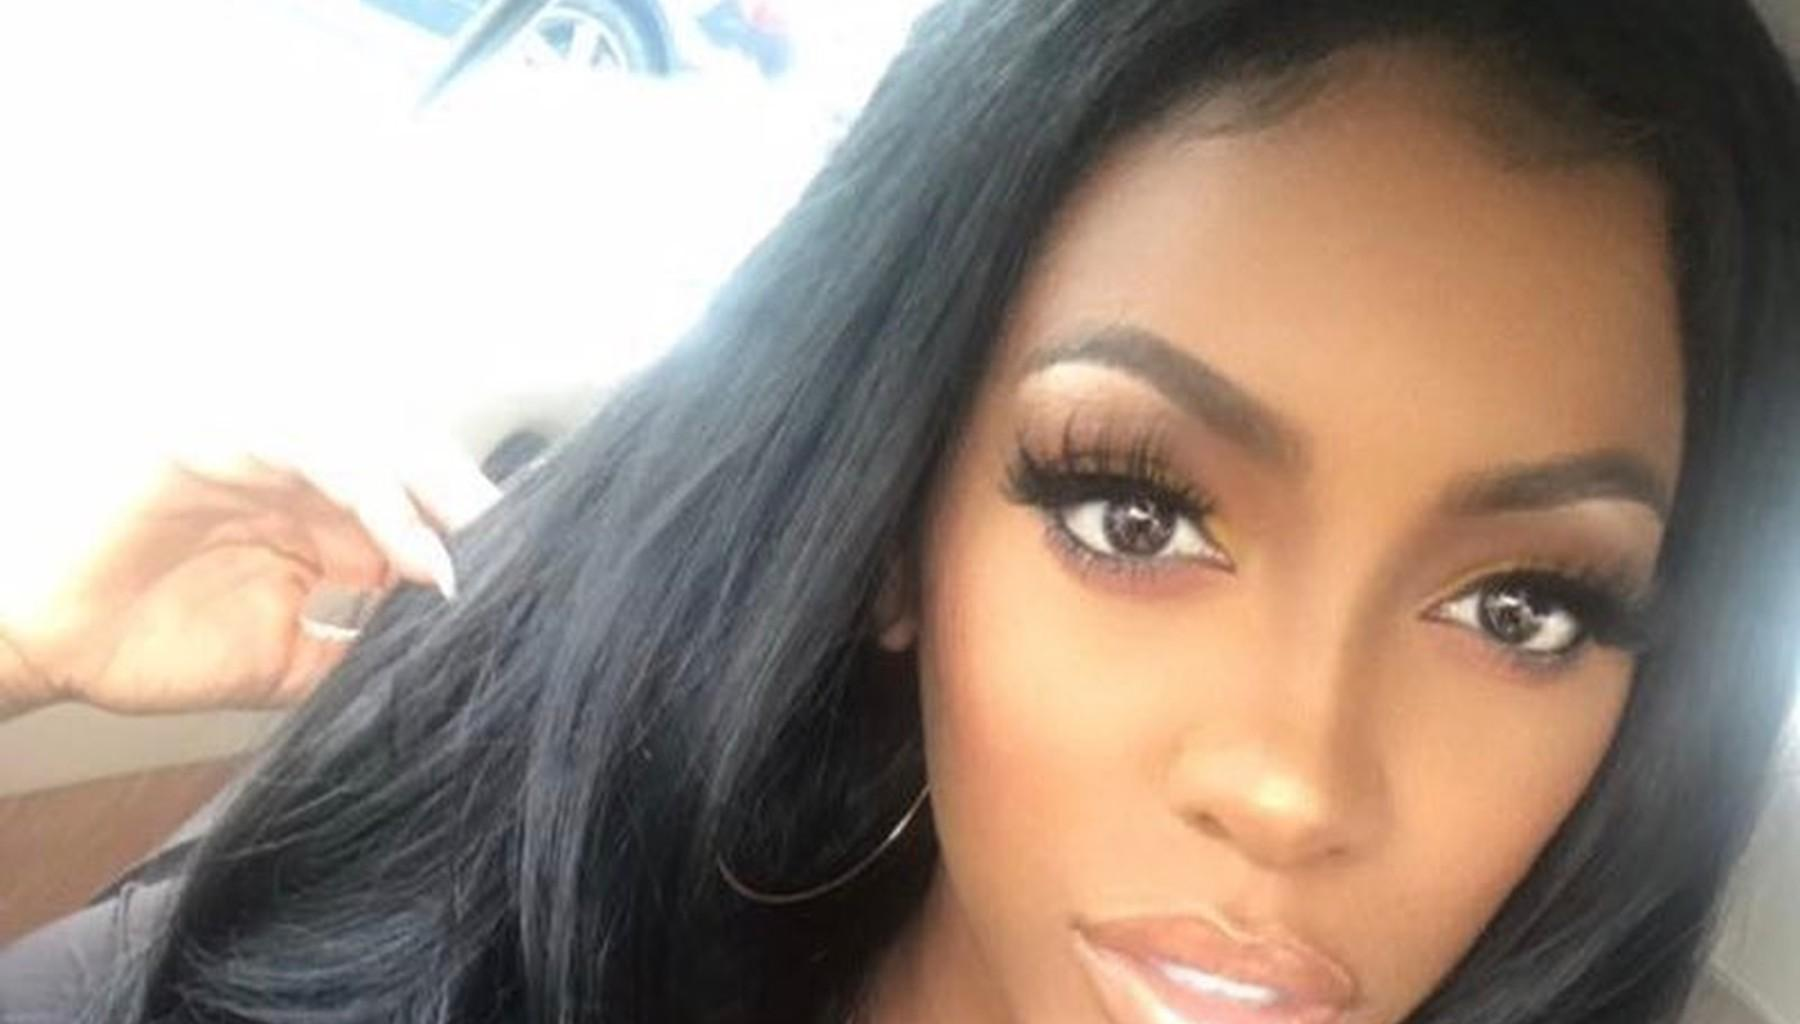 Porsha Williams Desperately Shares One Of Her Problems With Fans, Asking For Help